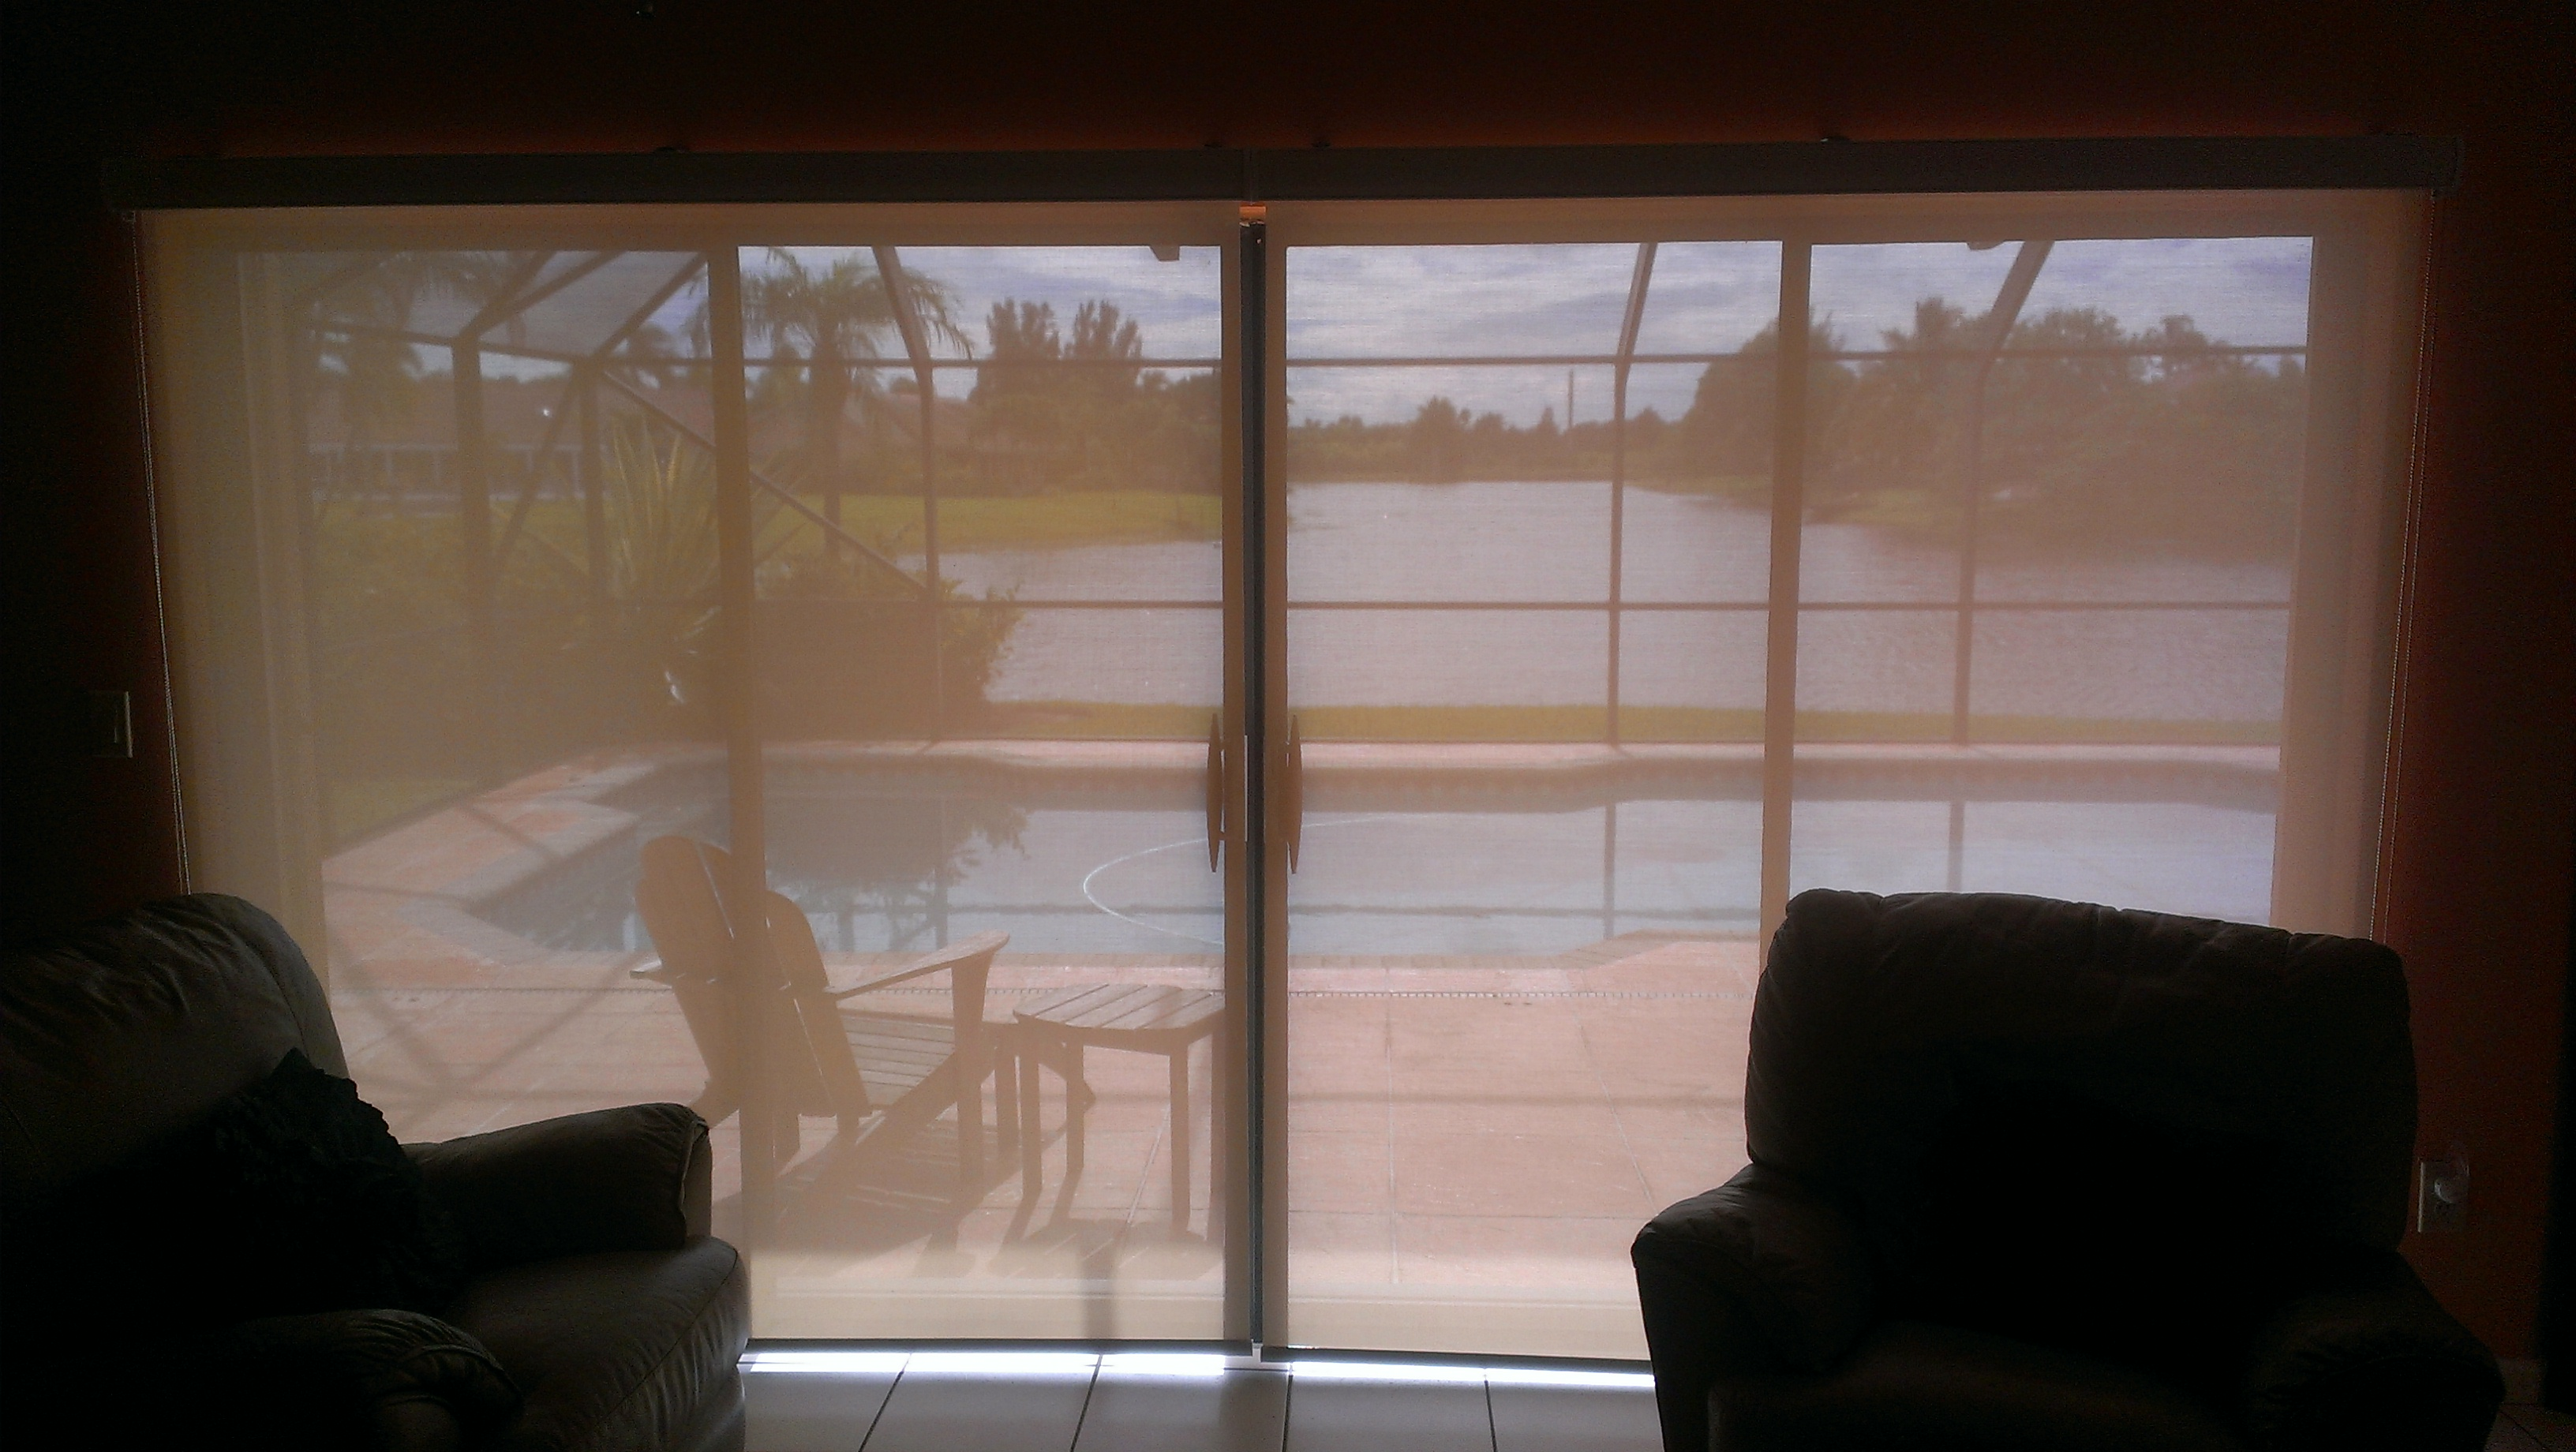 Decorative Roller Shades For Windows : Roller shades manufacturers of custom window treatments